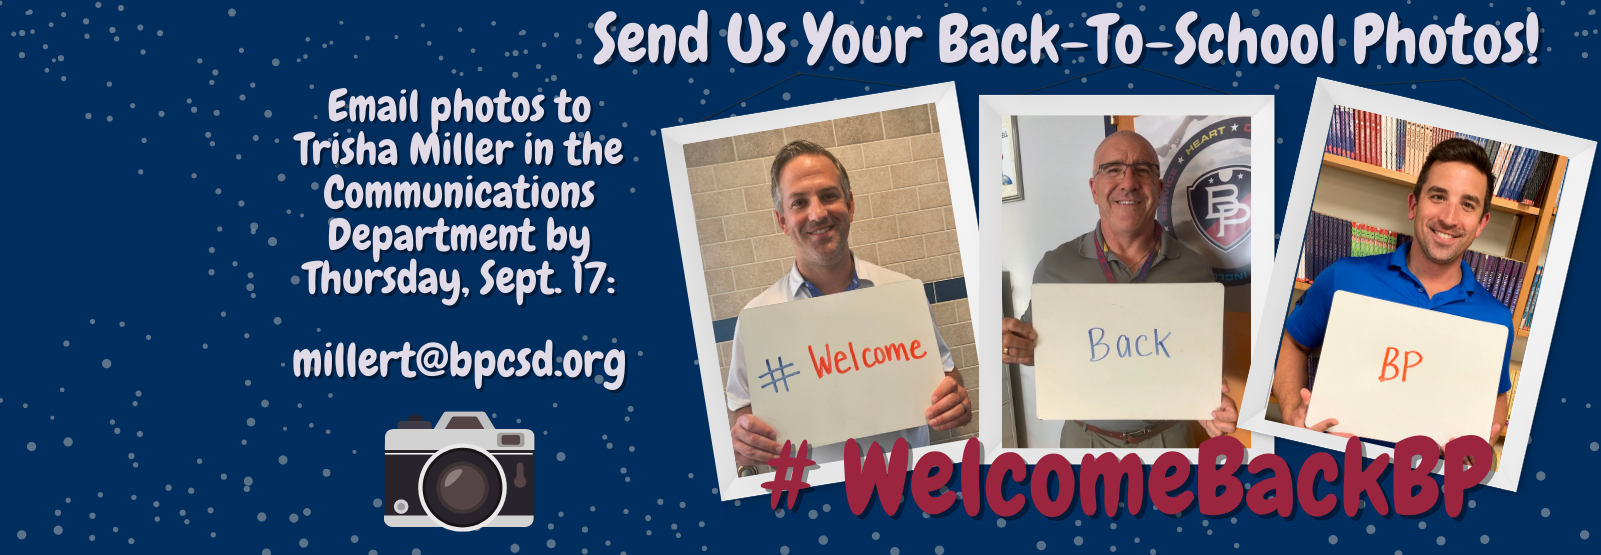 Photo showing BP Principals encouraging families to send in their back-to-school photos